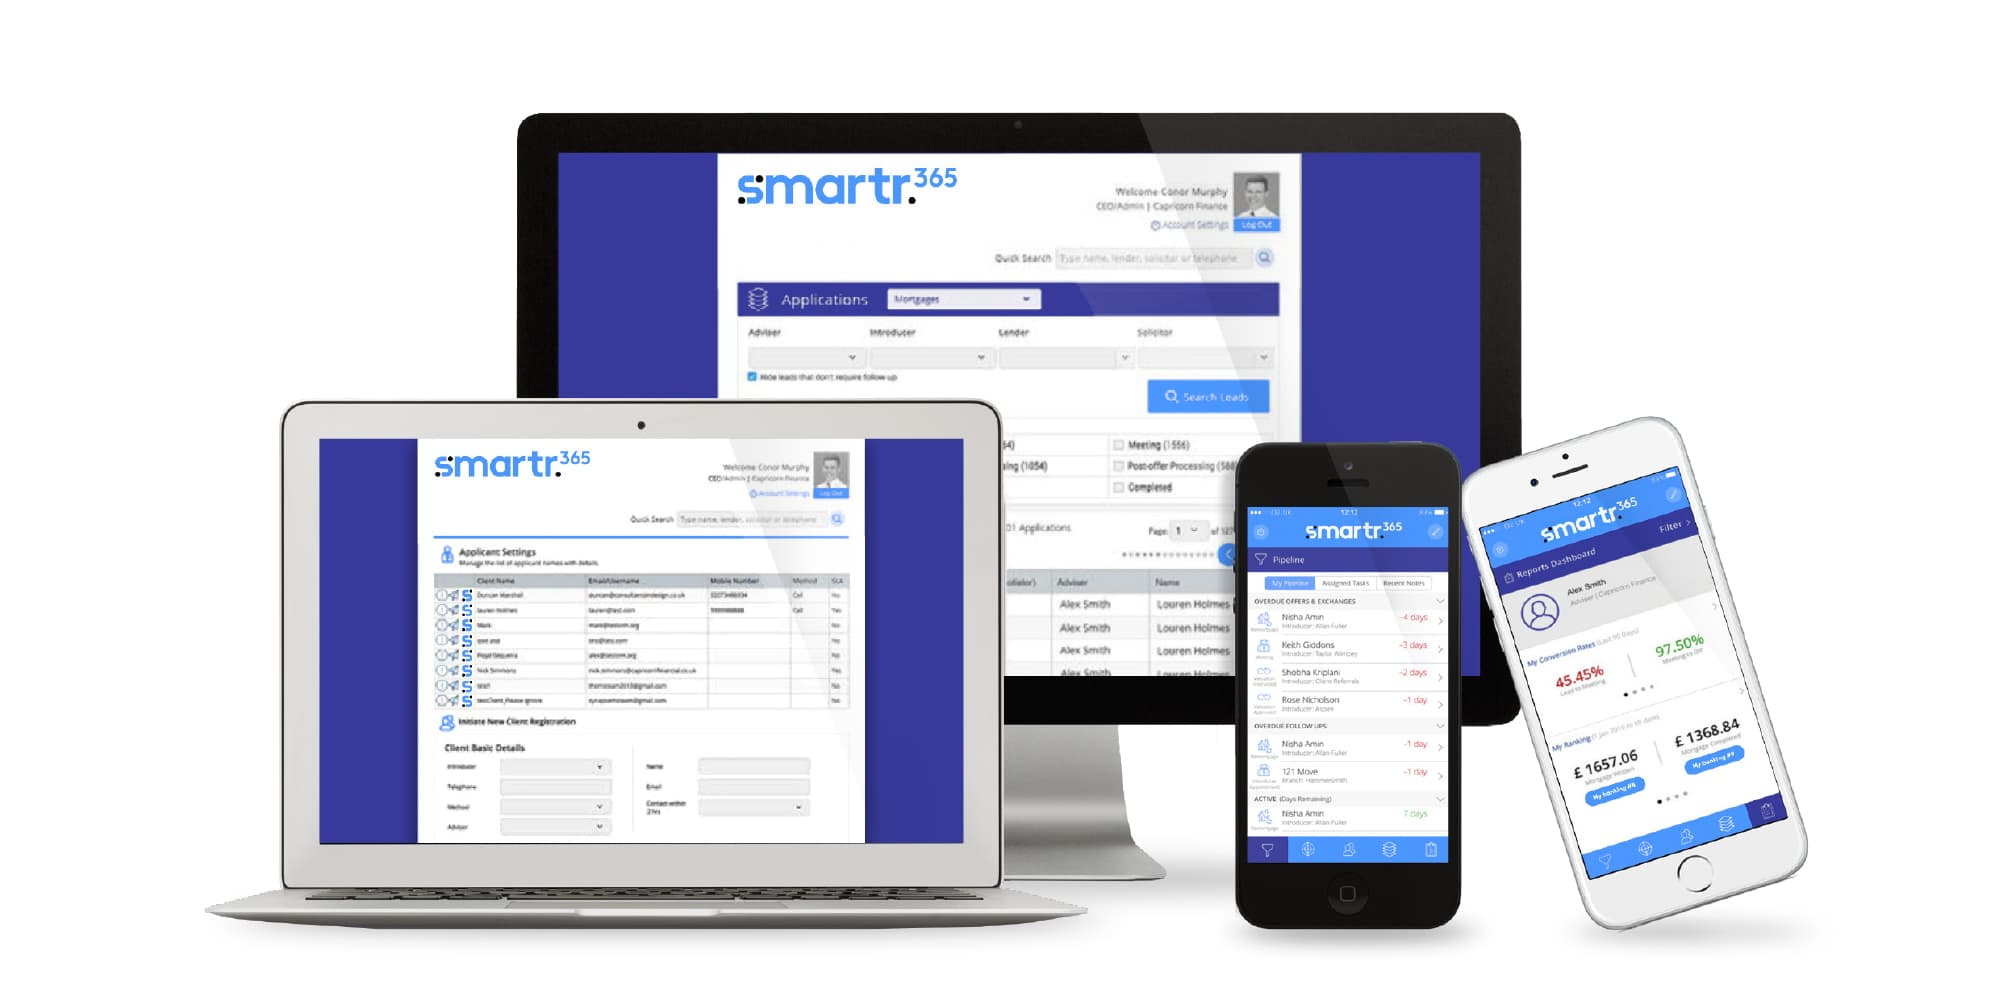 capricorn financial mortgages smart application